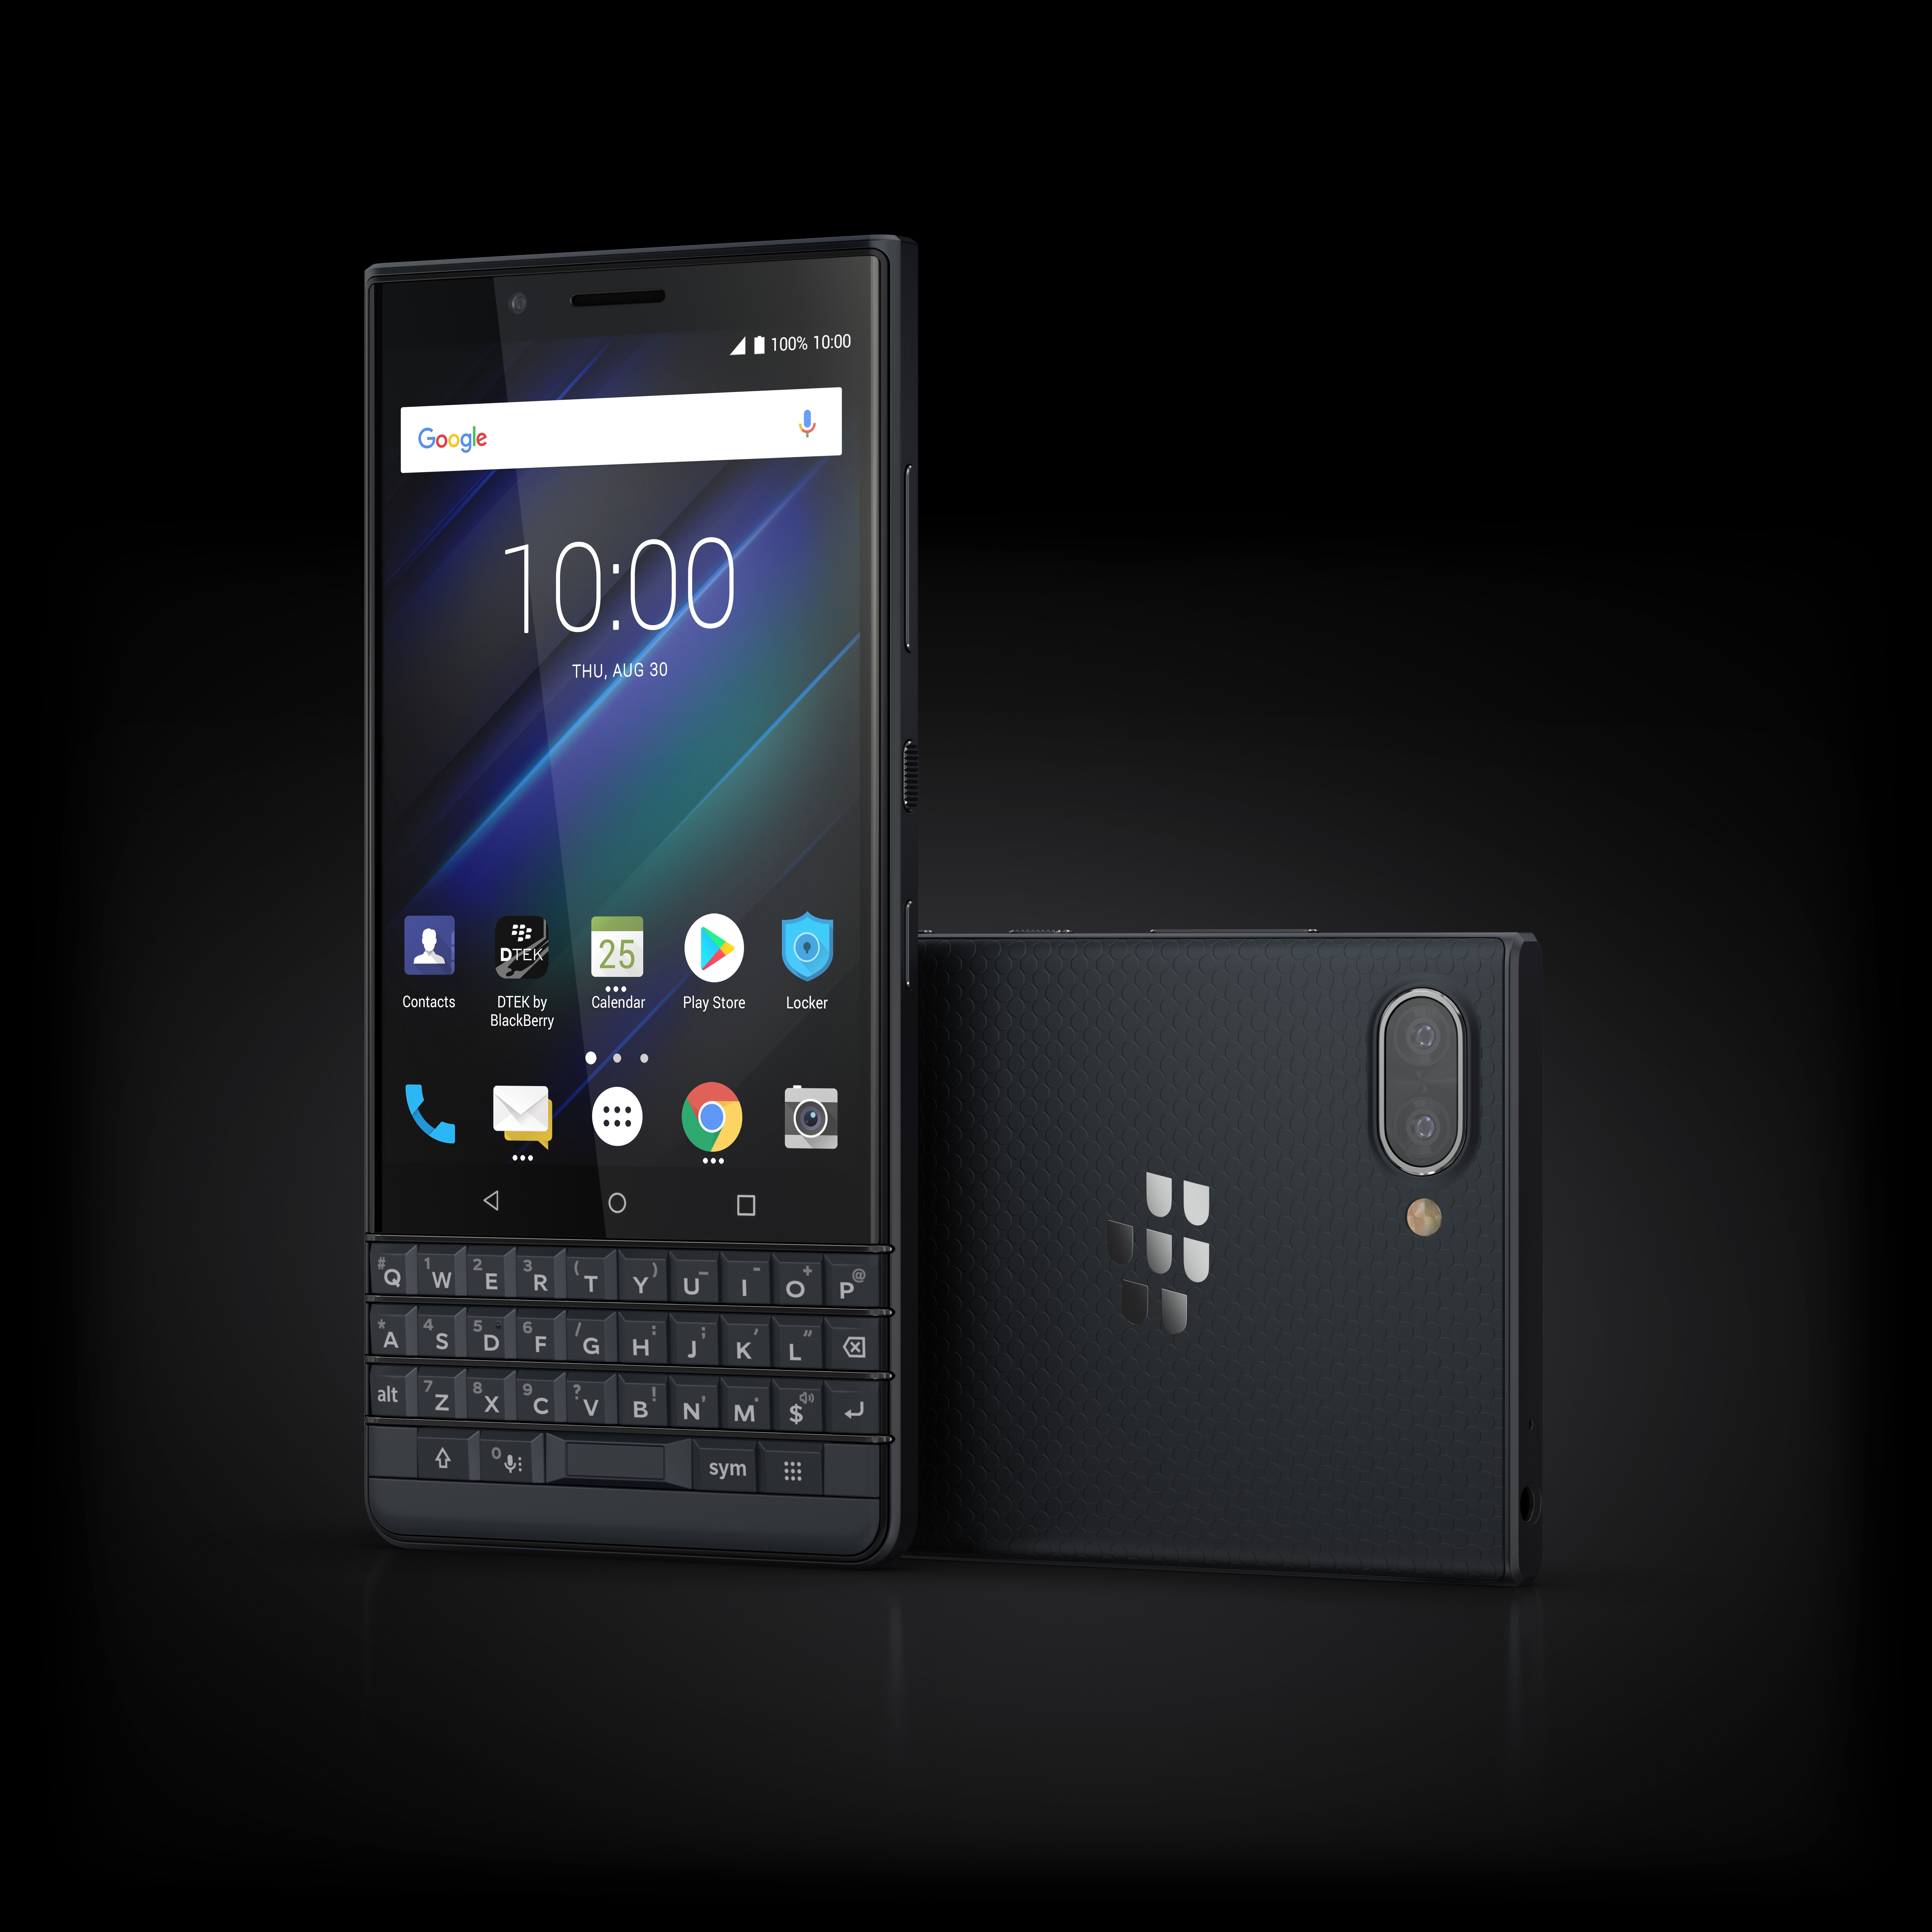 10 Luna Slate Stylized - BlackBerry KEY 2 LE